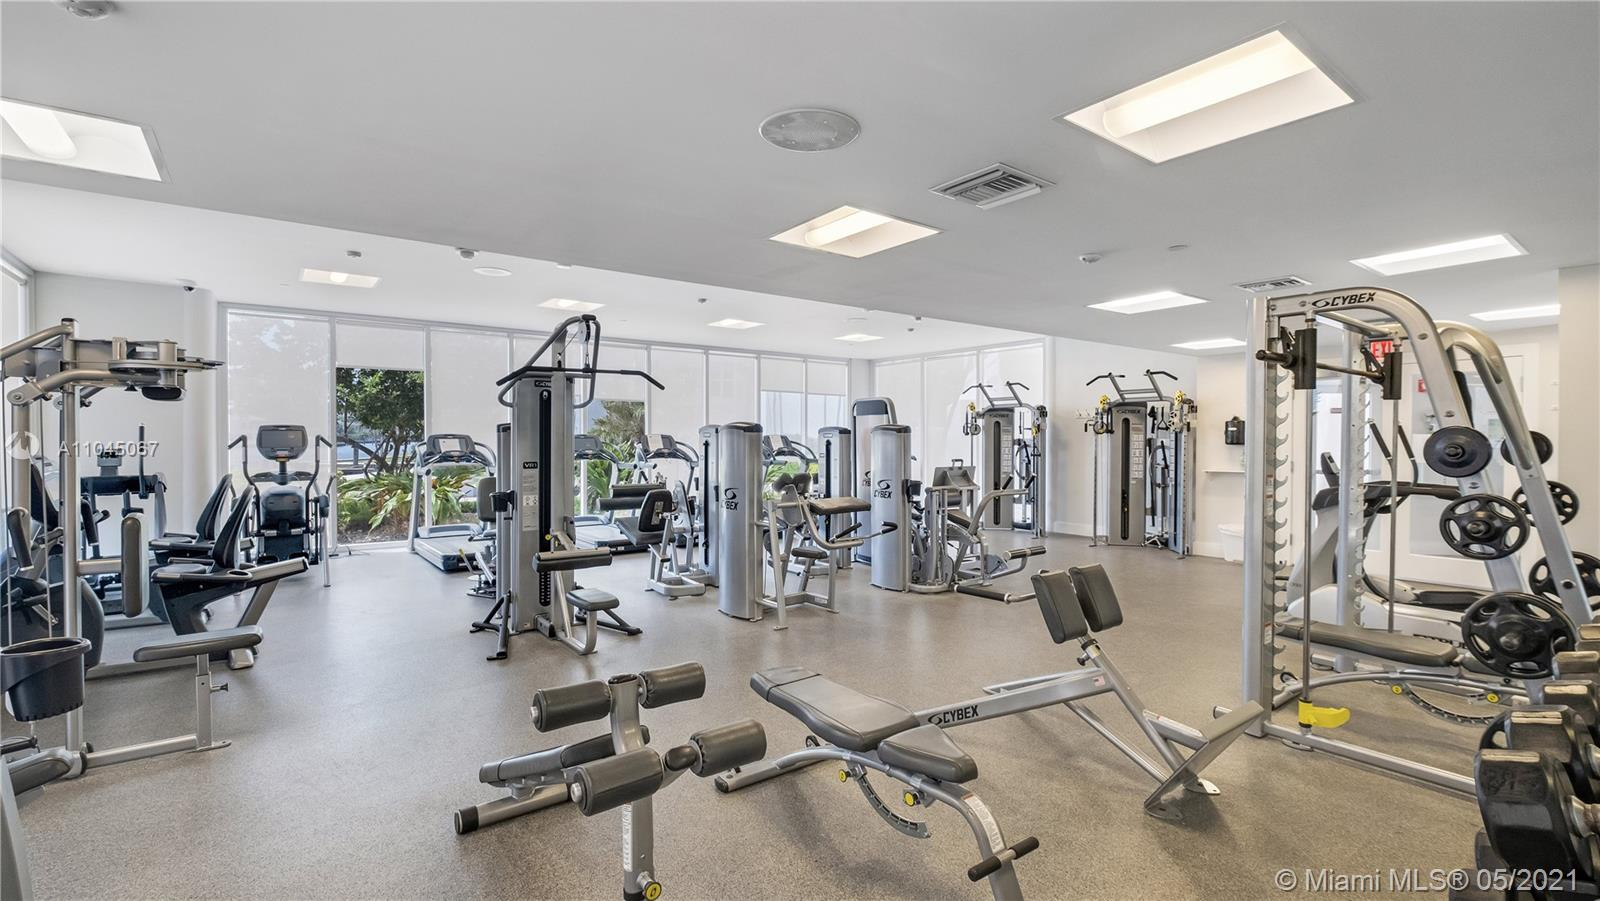 Photo of 20281 Country Club Dr #314, Aventura, Florida, 33180 - Clubhouse entry to fitness center and spa.